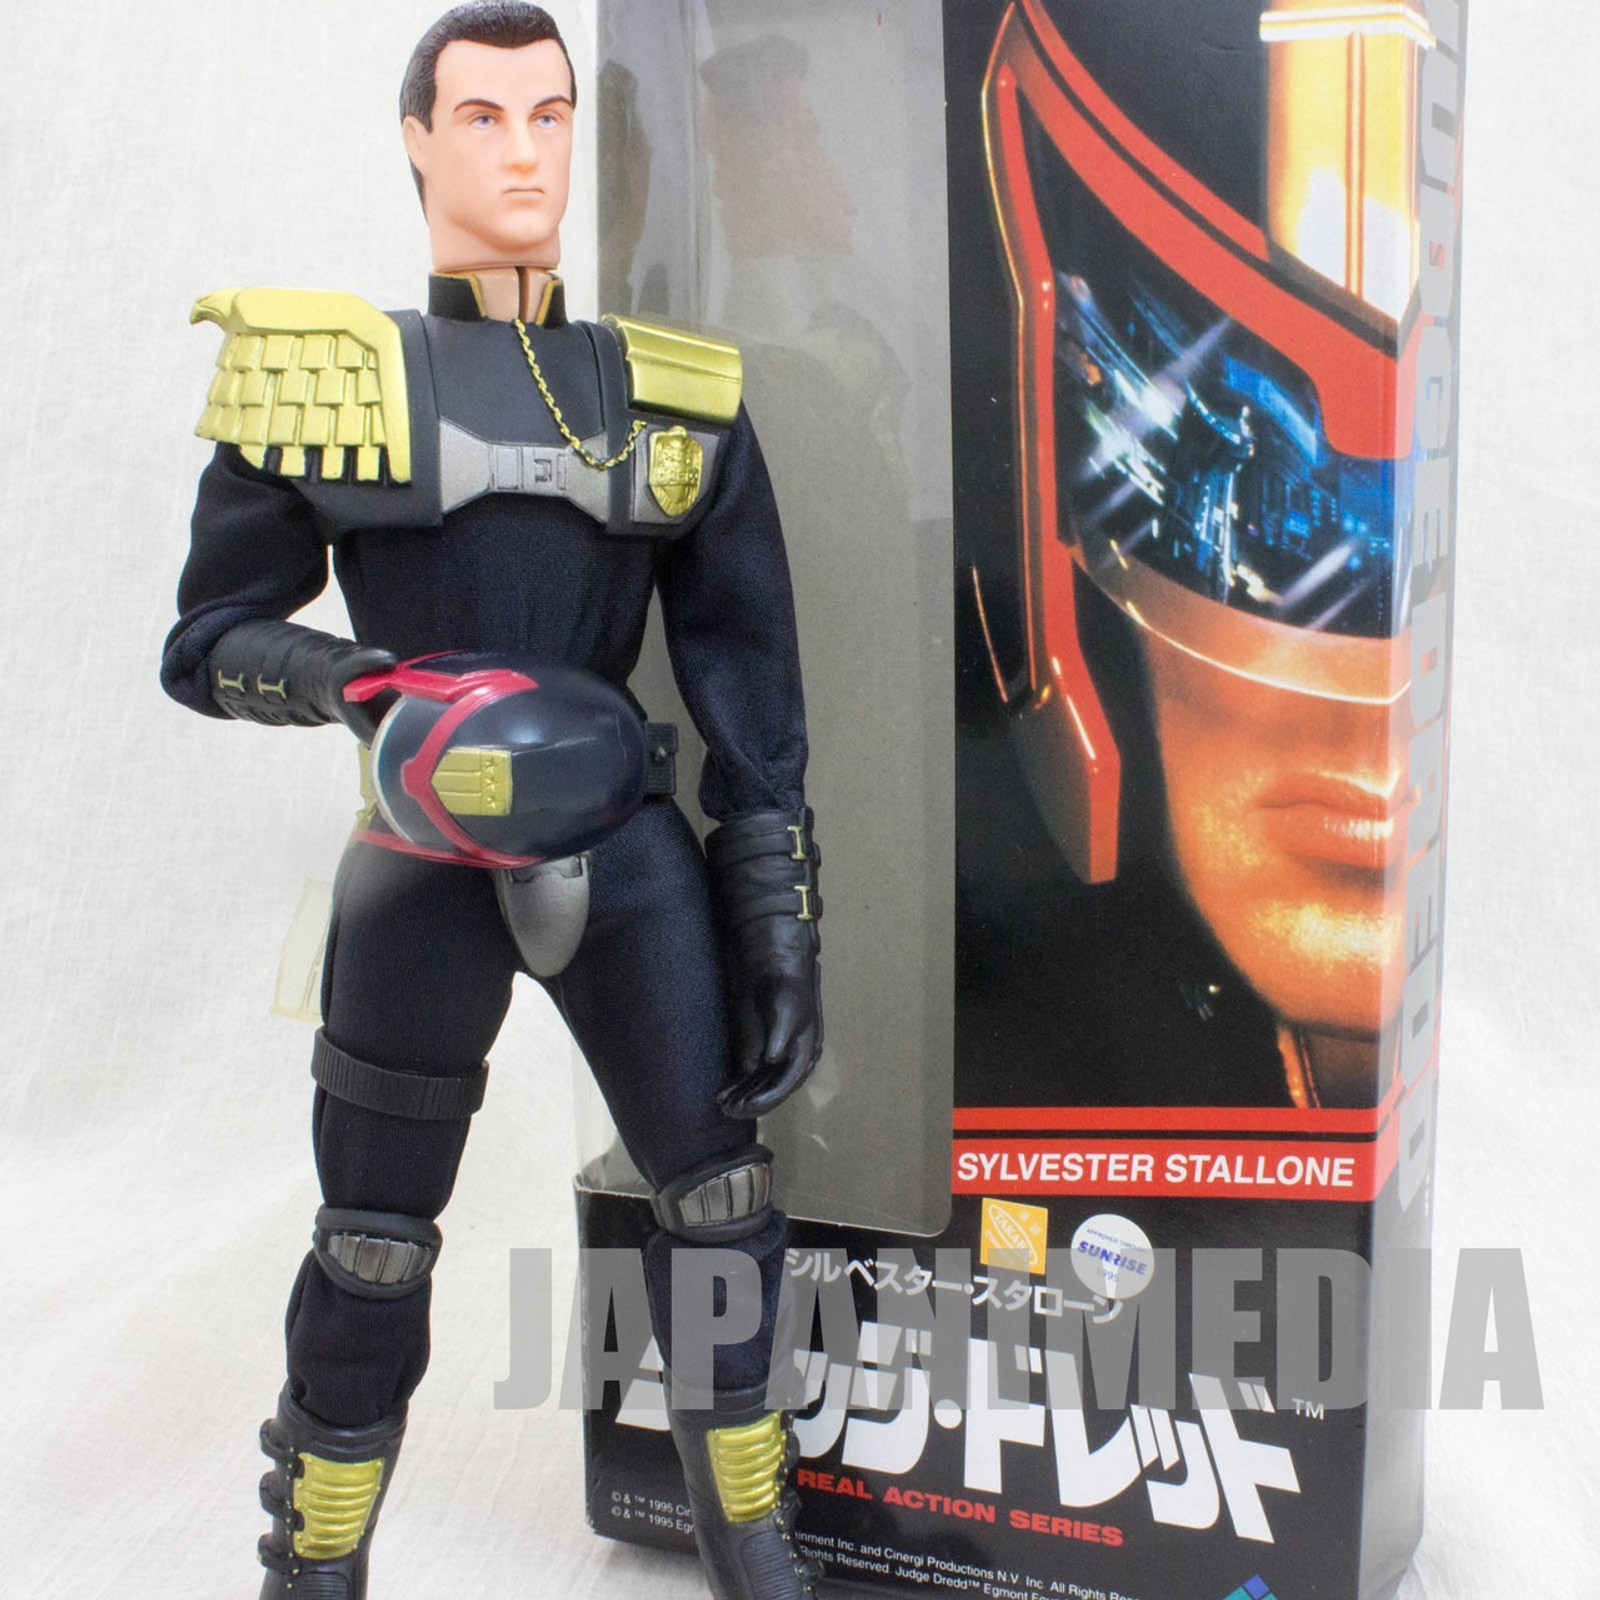 Judge Dredd Real Action Sries Figure Medicom Sylvester Stallone JAPAN